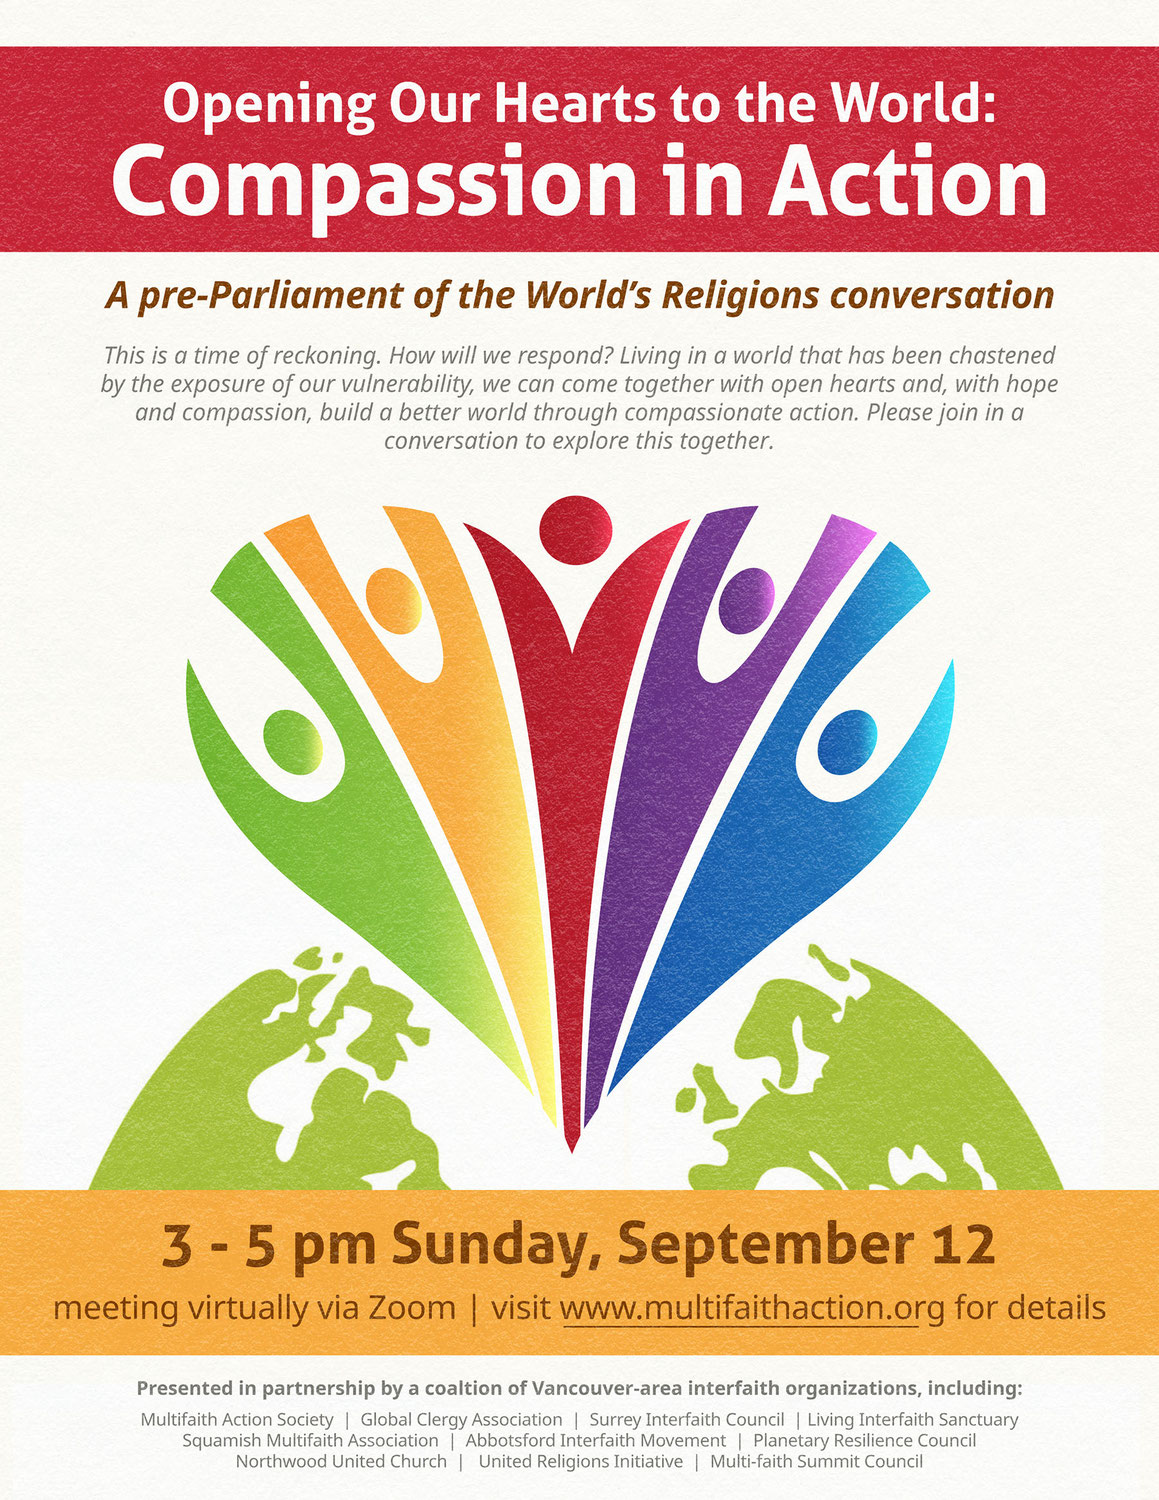 Opening Our Hearts to the World: Compassion in Action